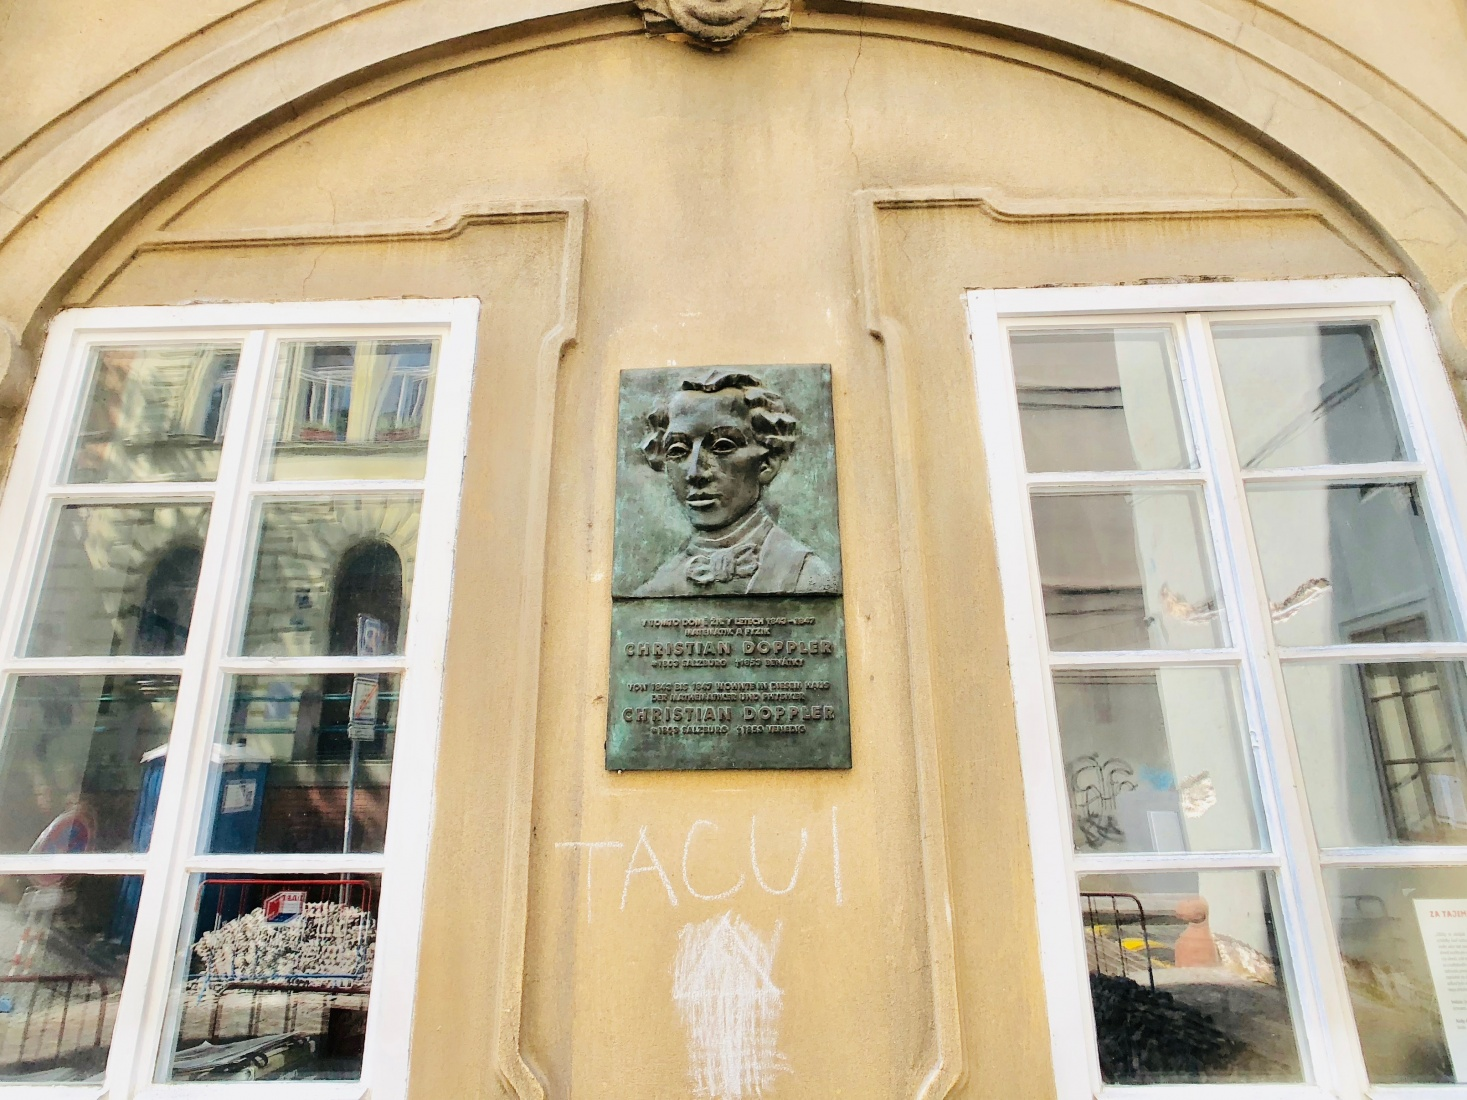 The plaque on the former home of Austrian mathematician and astronomer Christian Doppler.